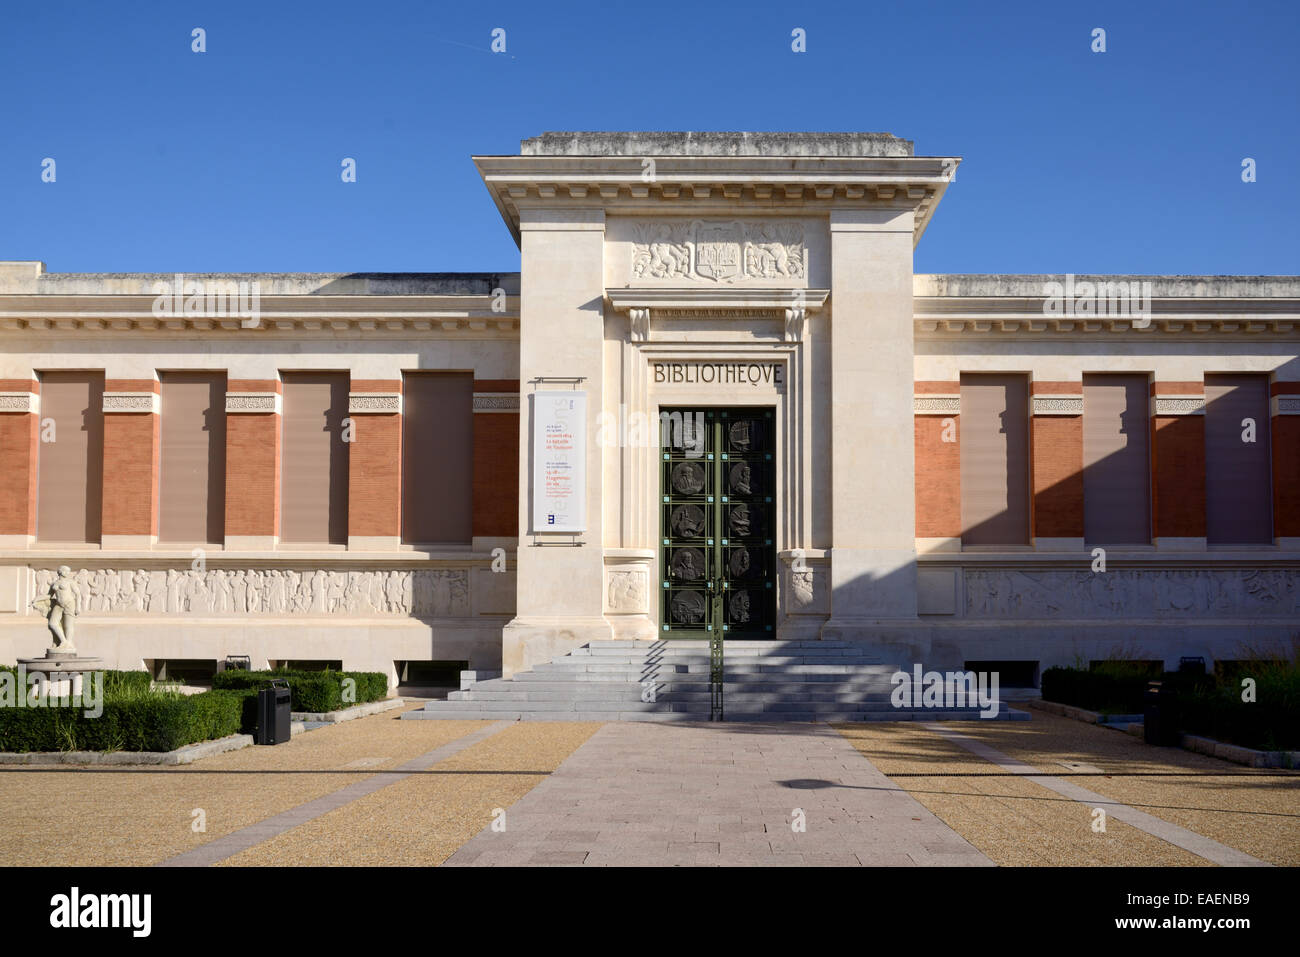 Art Deco Style 1930s Municipal Library or Public Library Building Toulouse France - Stock Image